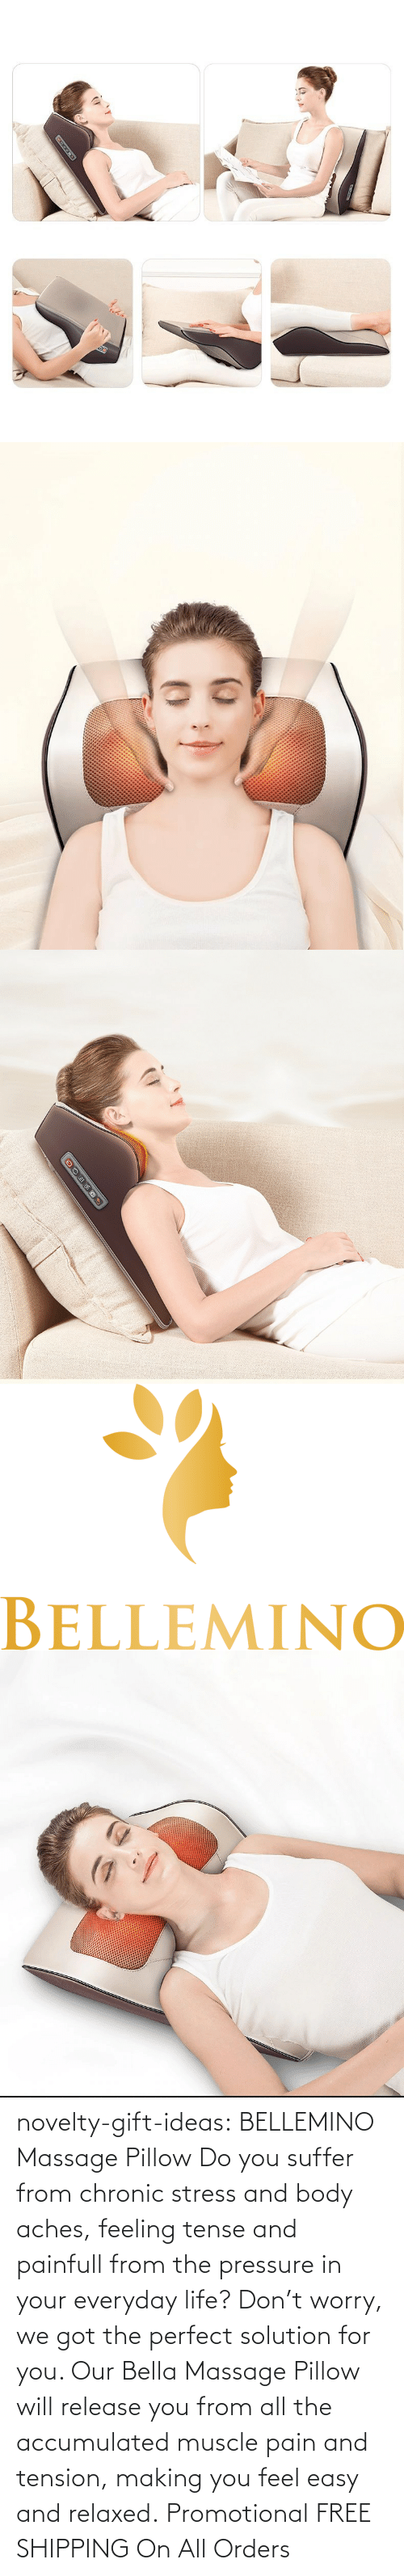 feel: novelty-gift-ideas:   BELLEMINO Massage Pillow     Do you suffer from chronic stress and body aches, feeling tense and painfull from the pressure in your everyday life? Don't worry, we got the perfect solution for you. Our Bella Massage Pillow will release you from all the accumulated muscle pain and tension, making you feel easy and relaxed.     Promotional FREE SHIPPING On All Orders